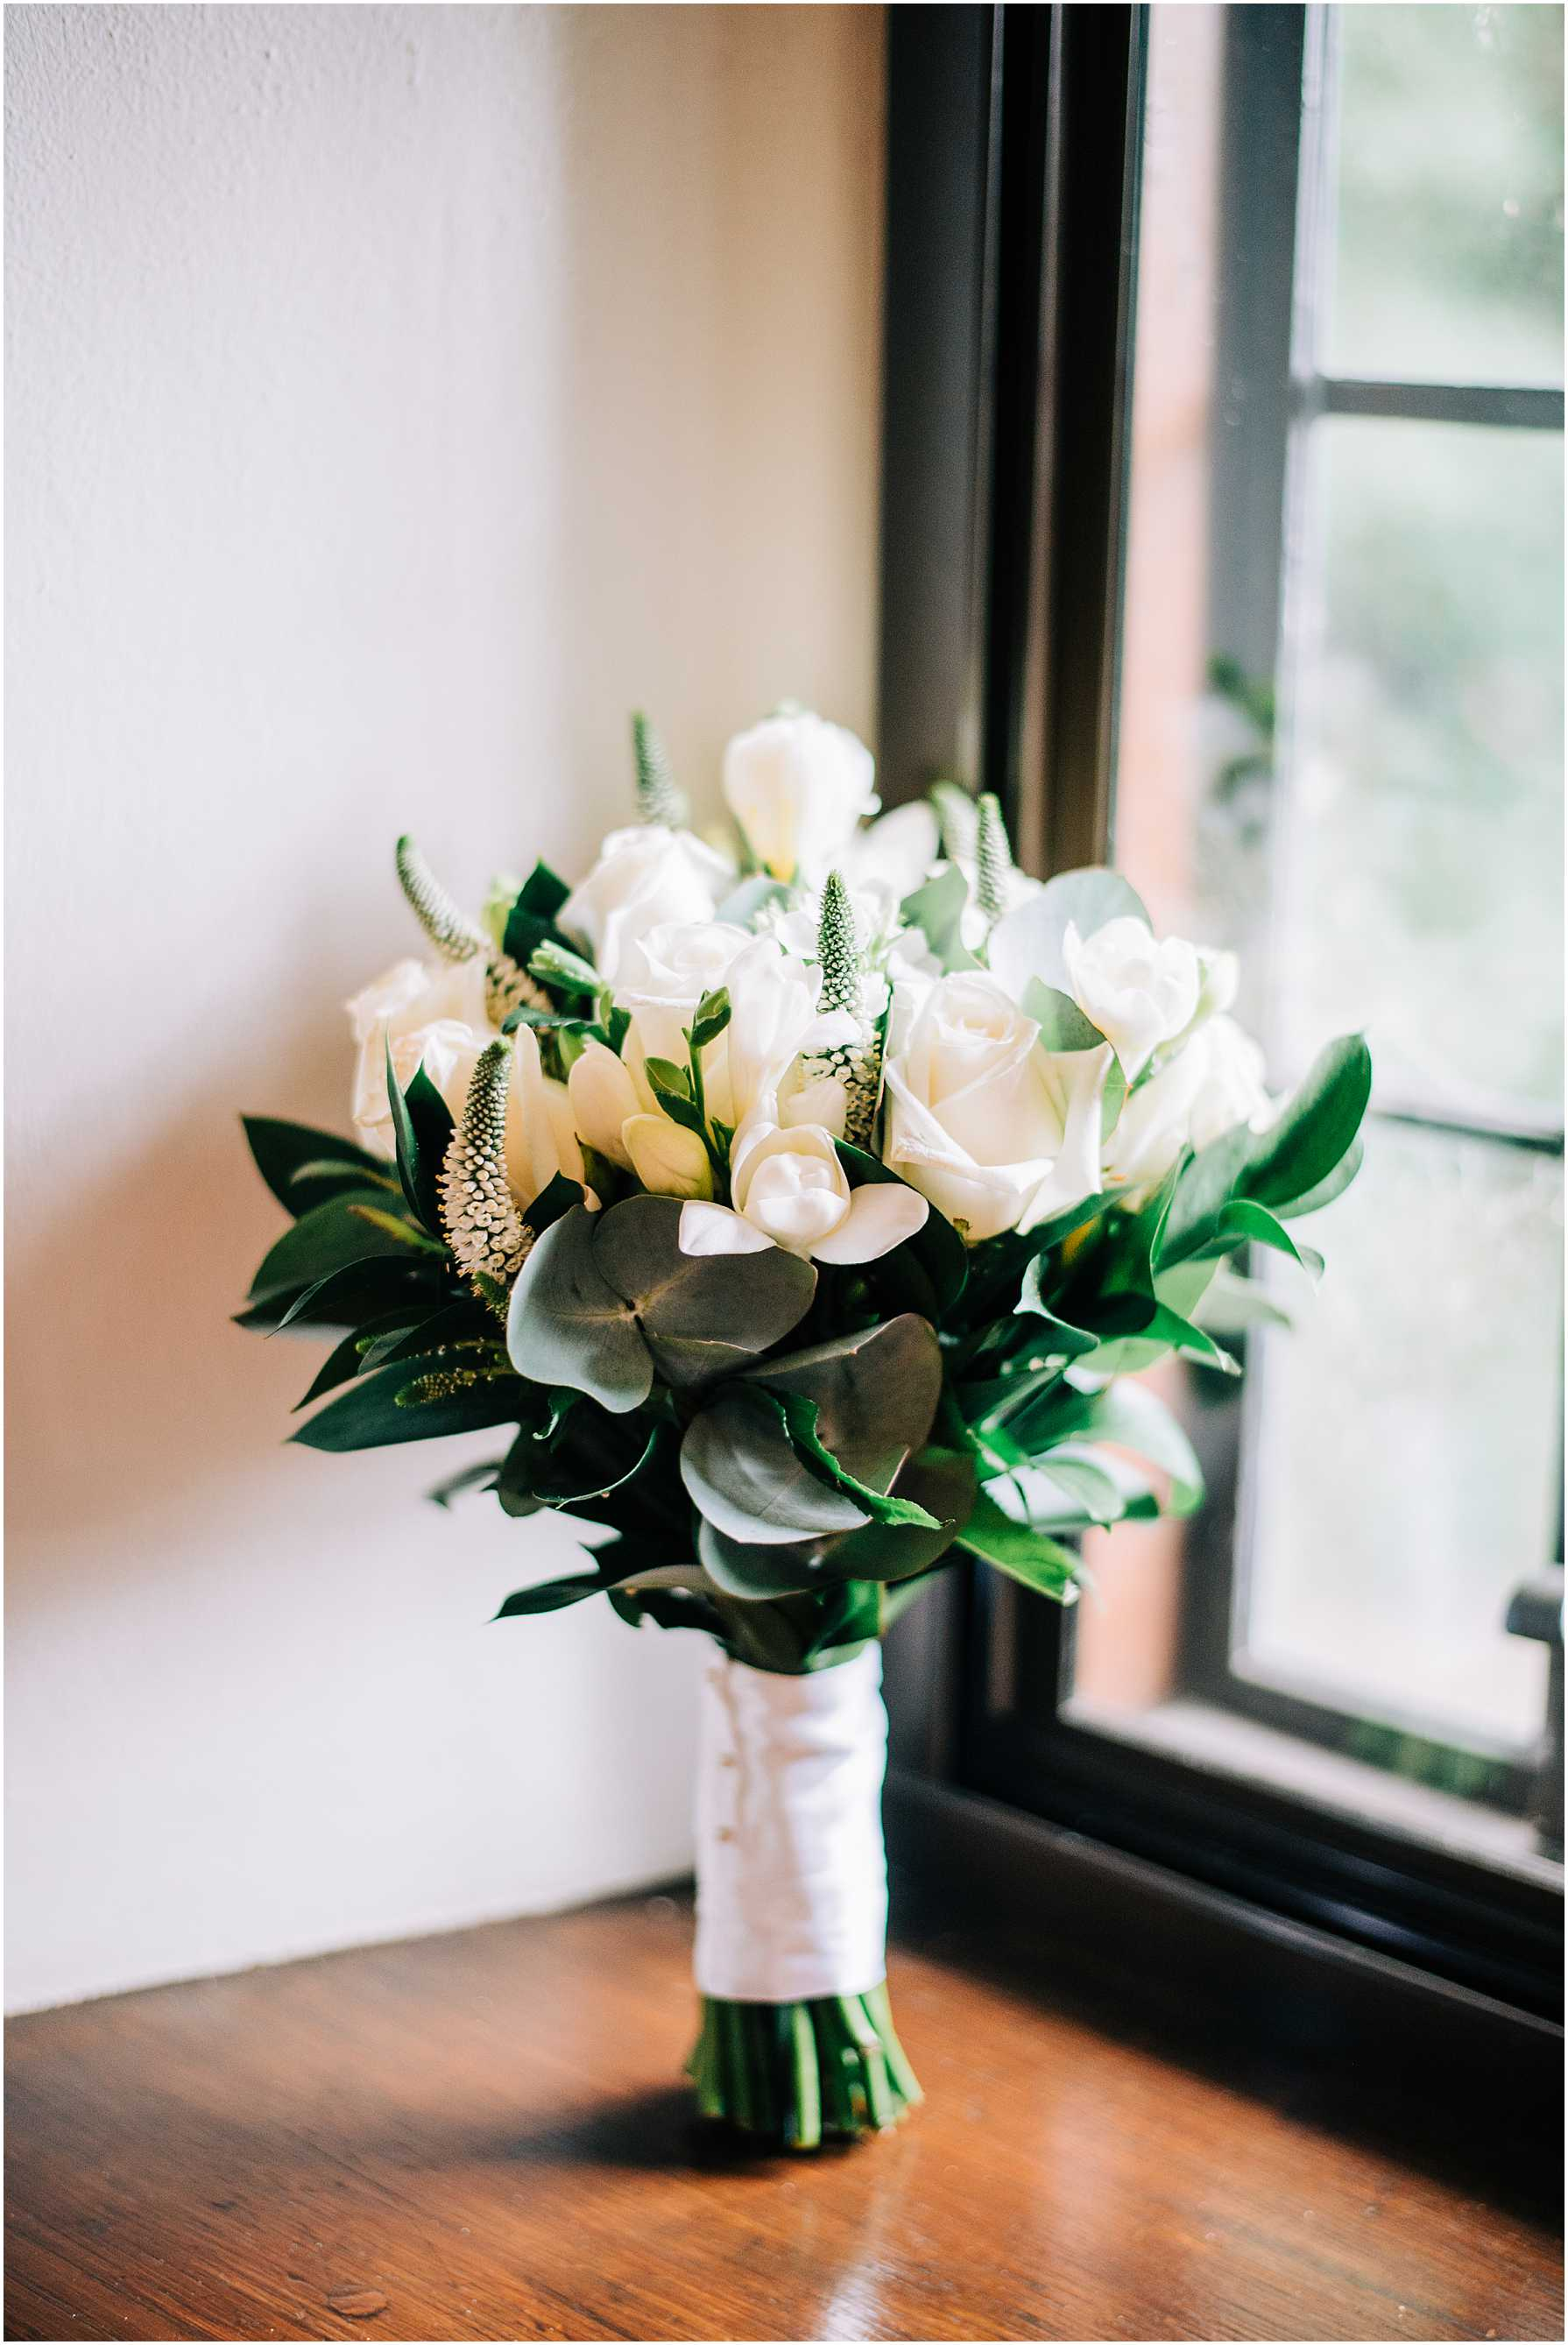 bridal bouquet sitting in window sill